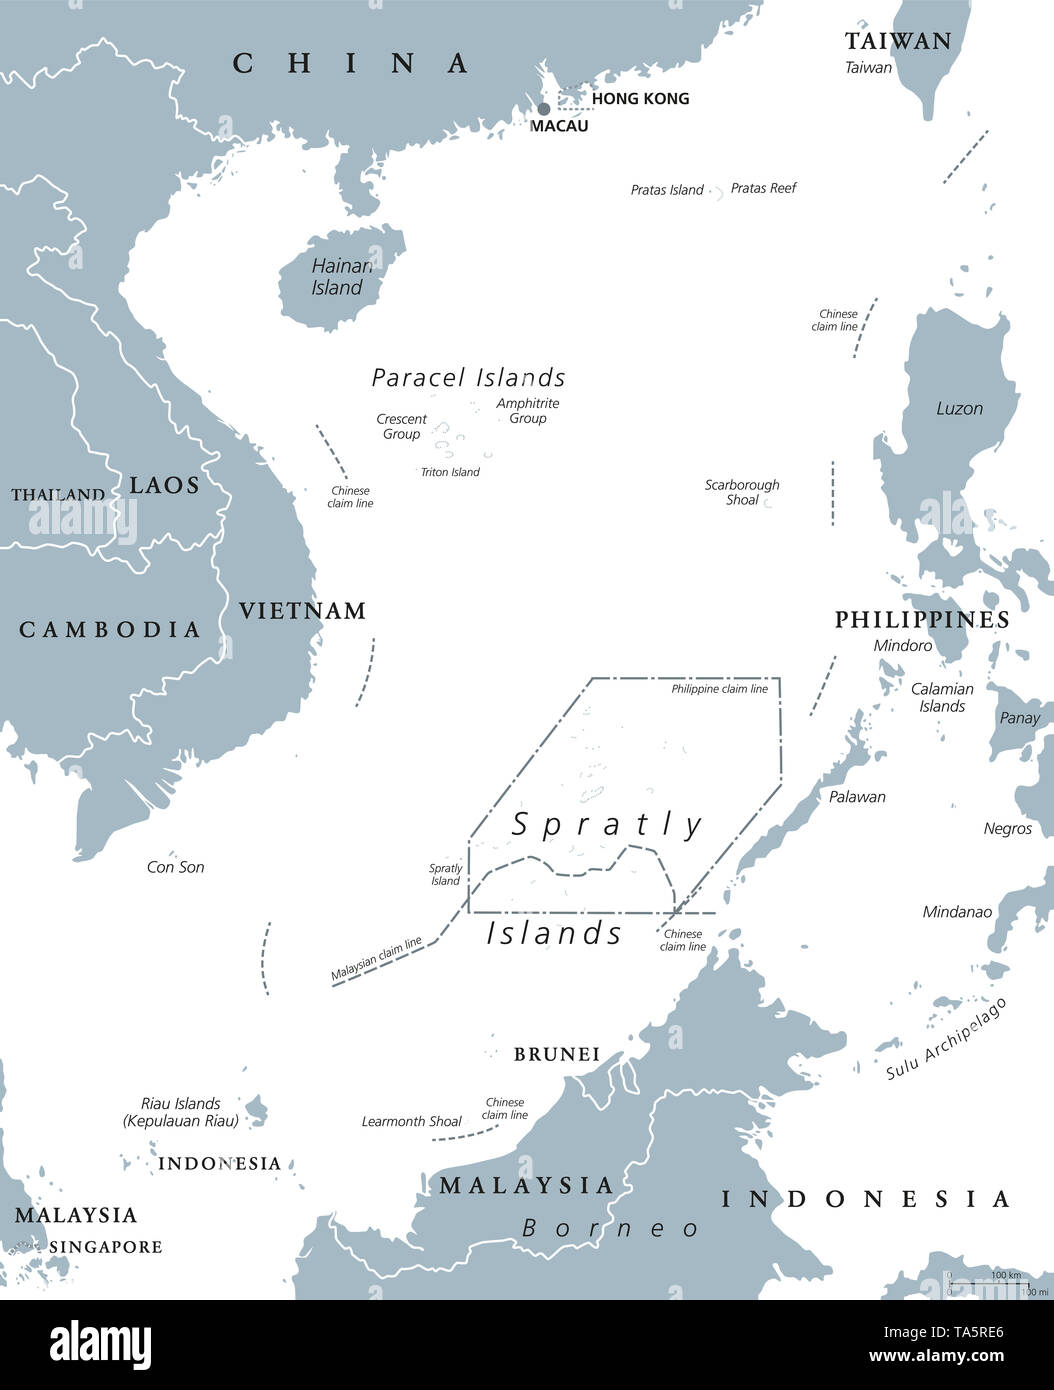 South China Sea Islands, political map. Paracel and Spratly Islands, atolls, cays and reefs. Partially claimed by China and other neighboring states. Stock Photo